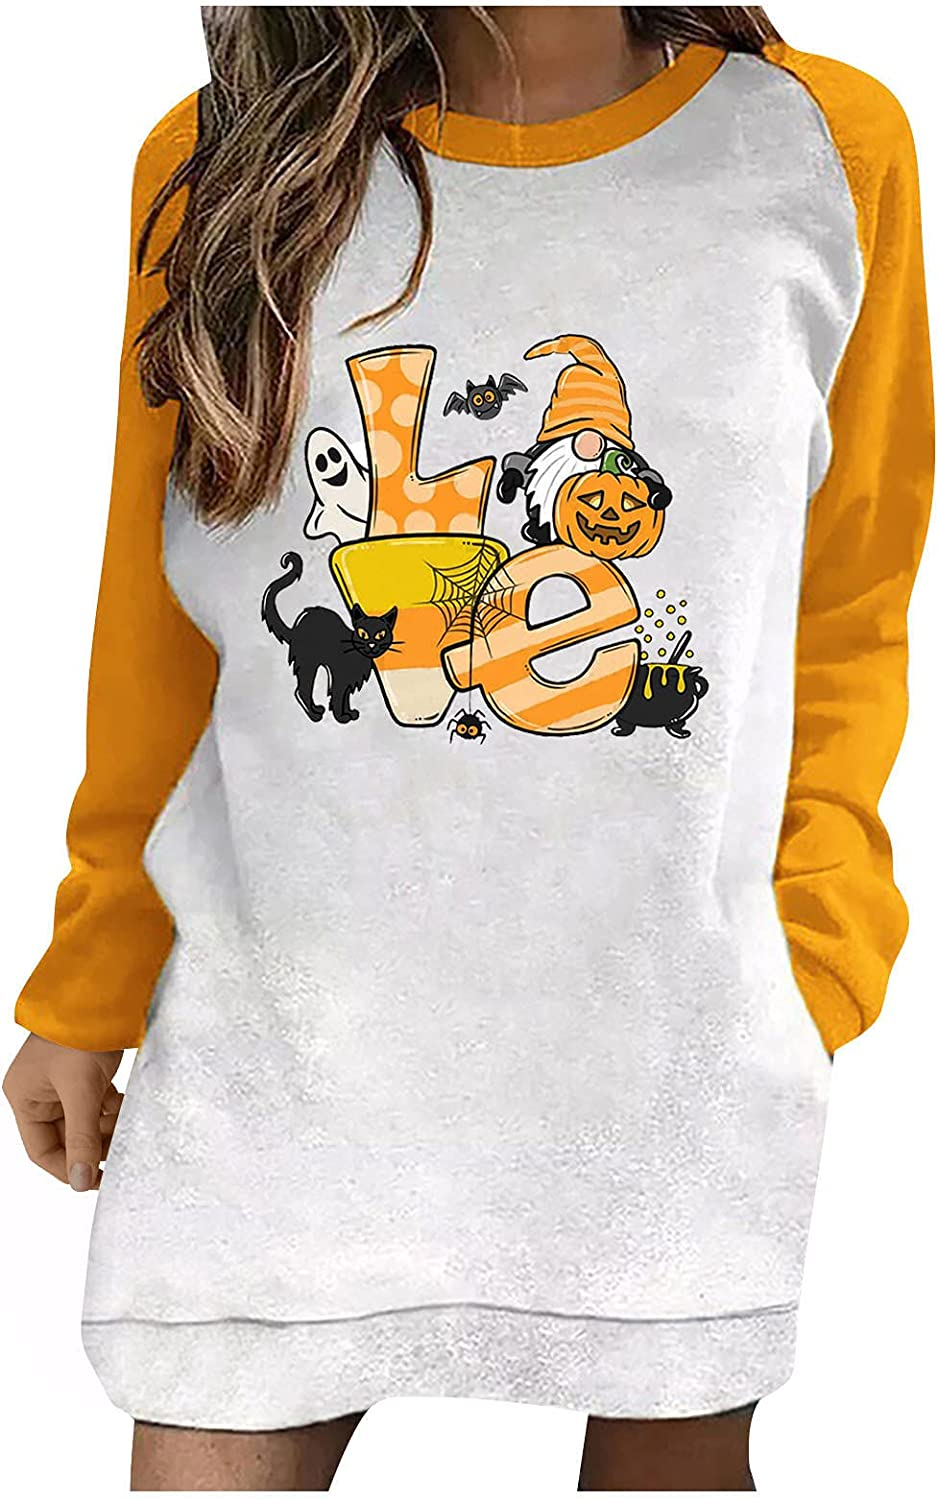 Women Free shipping anywhere in the nation Halloween Long Sleeve Tunic Pumpkin Graphic Our shop OFFers the best service Crewneck Tops